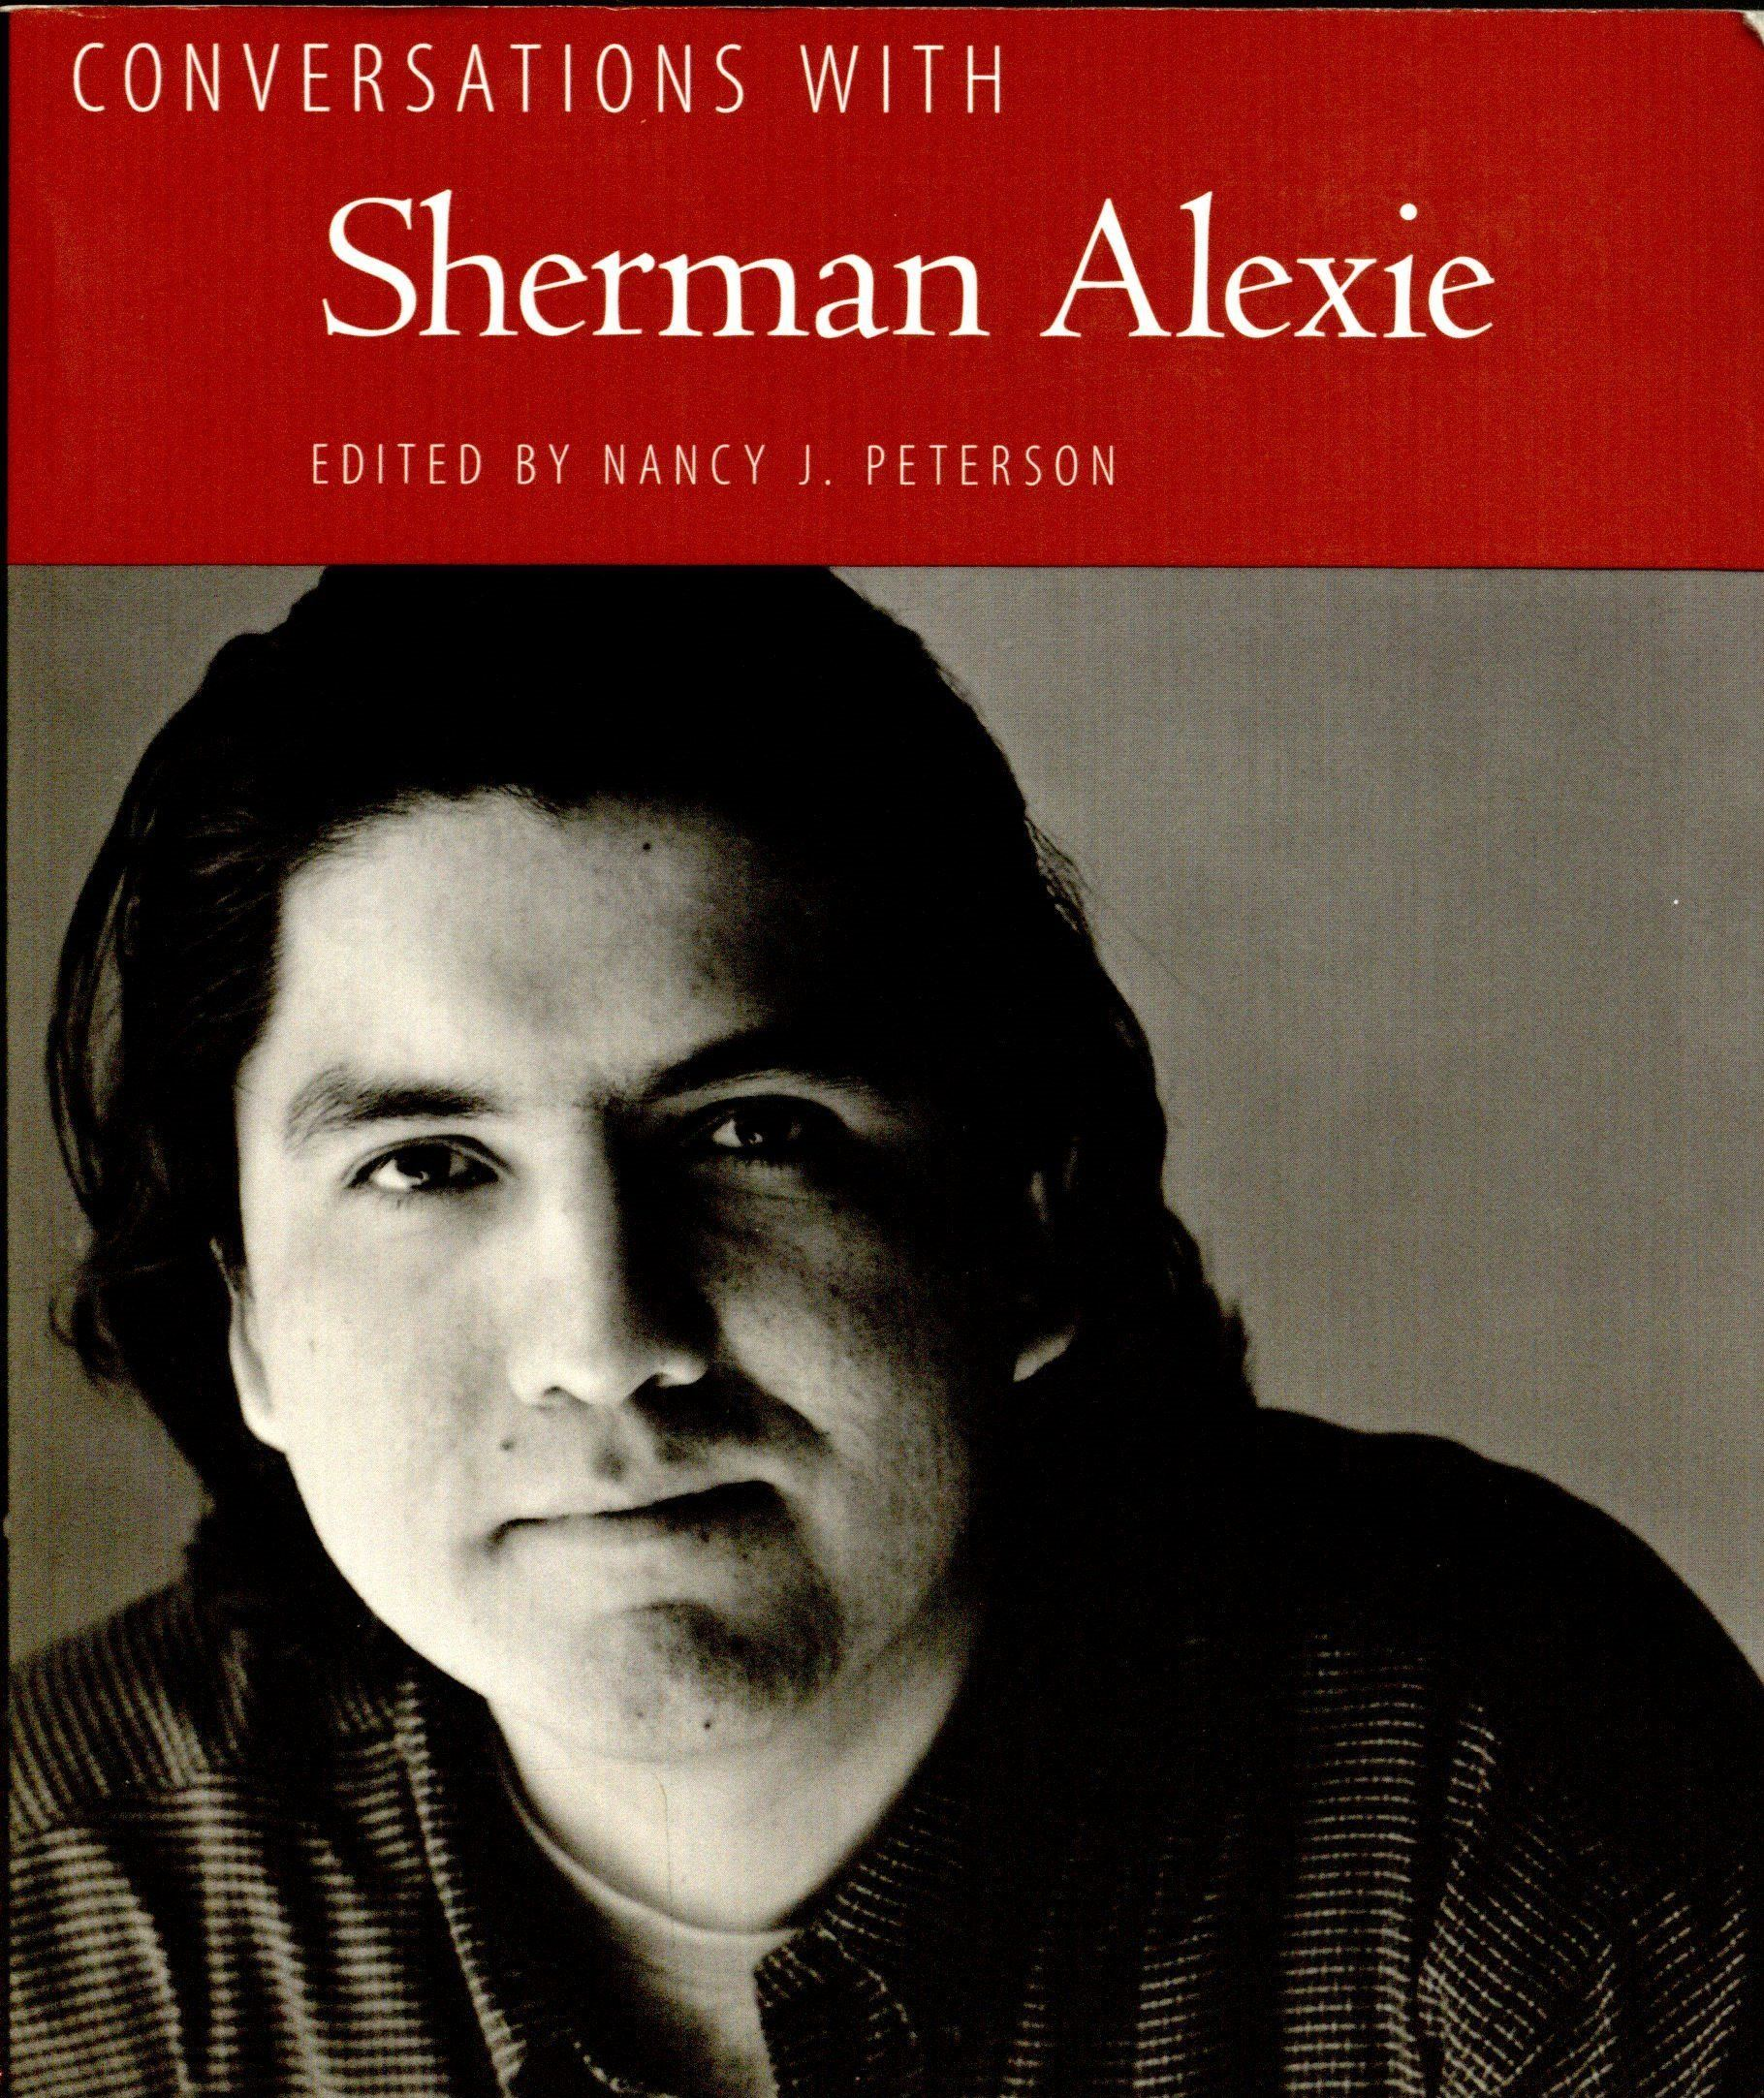 essay on indian education by sherman alexie Alexie, sherman  north american indian anthropology: essays on society and  culture  stein, wayne j aamerican indians and gambling: economic and  social impacts@ and aamerican indian education@ in american indian studies: .